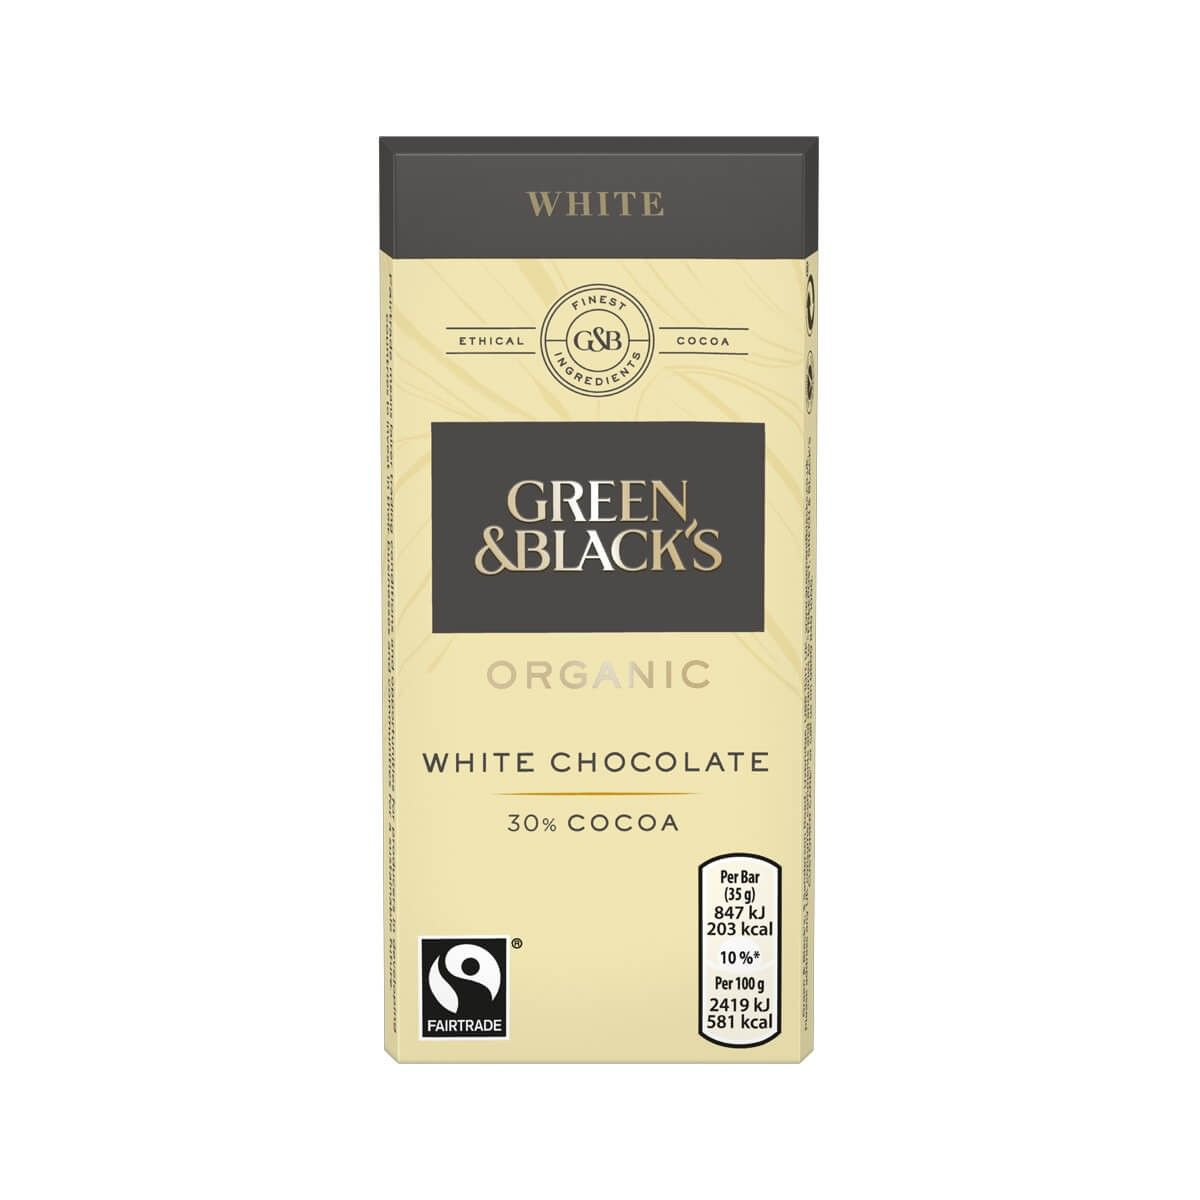 Green & Blacks White Chocolate Bars